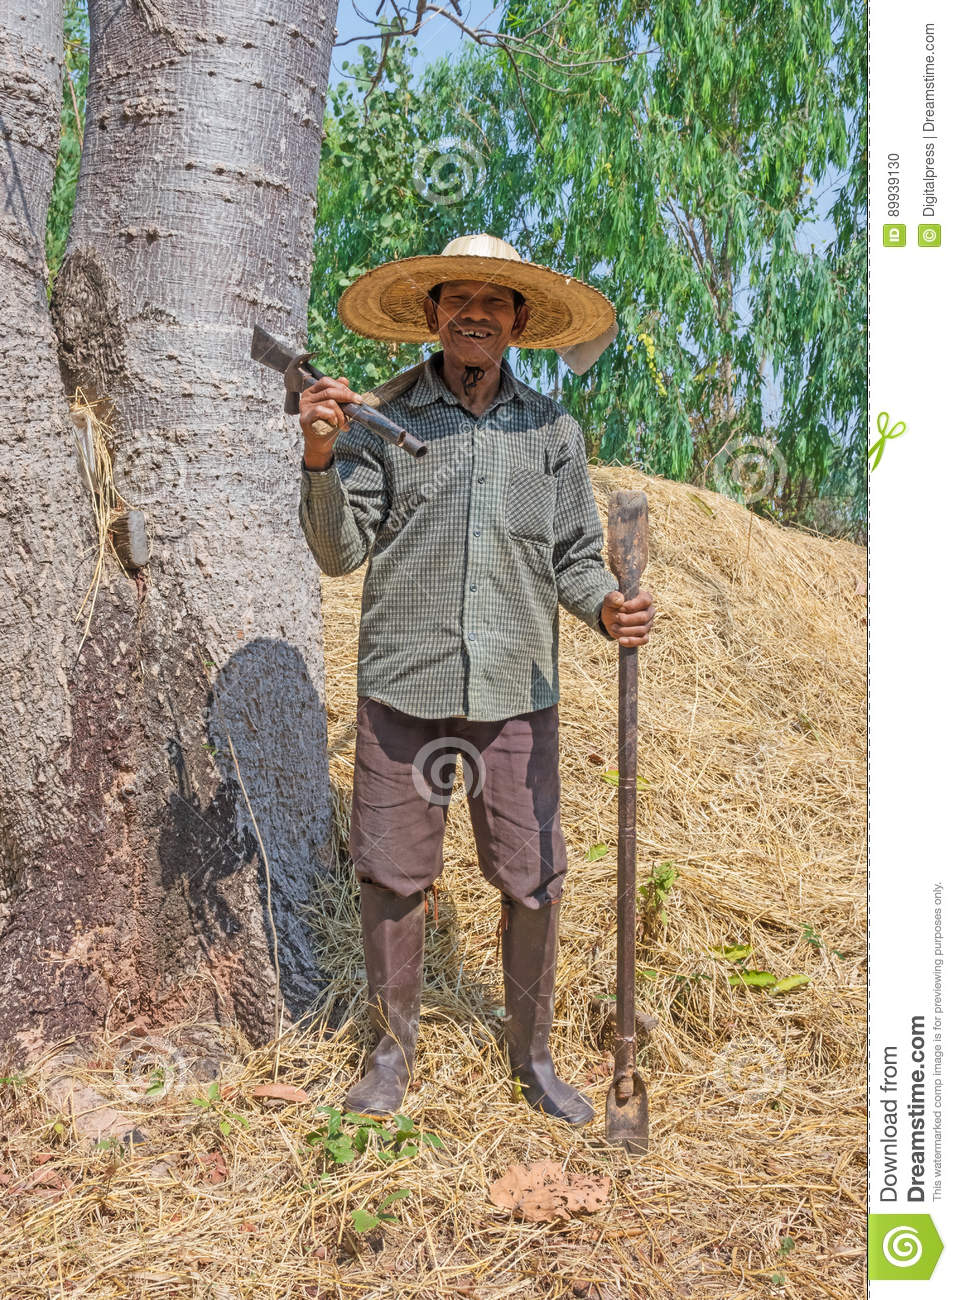 farmer asian single men There are many american men dating and marrying foreign brides, if you seeking an asian woman for dating or marriage, stop by   a.